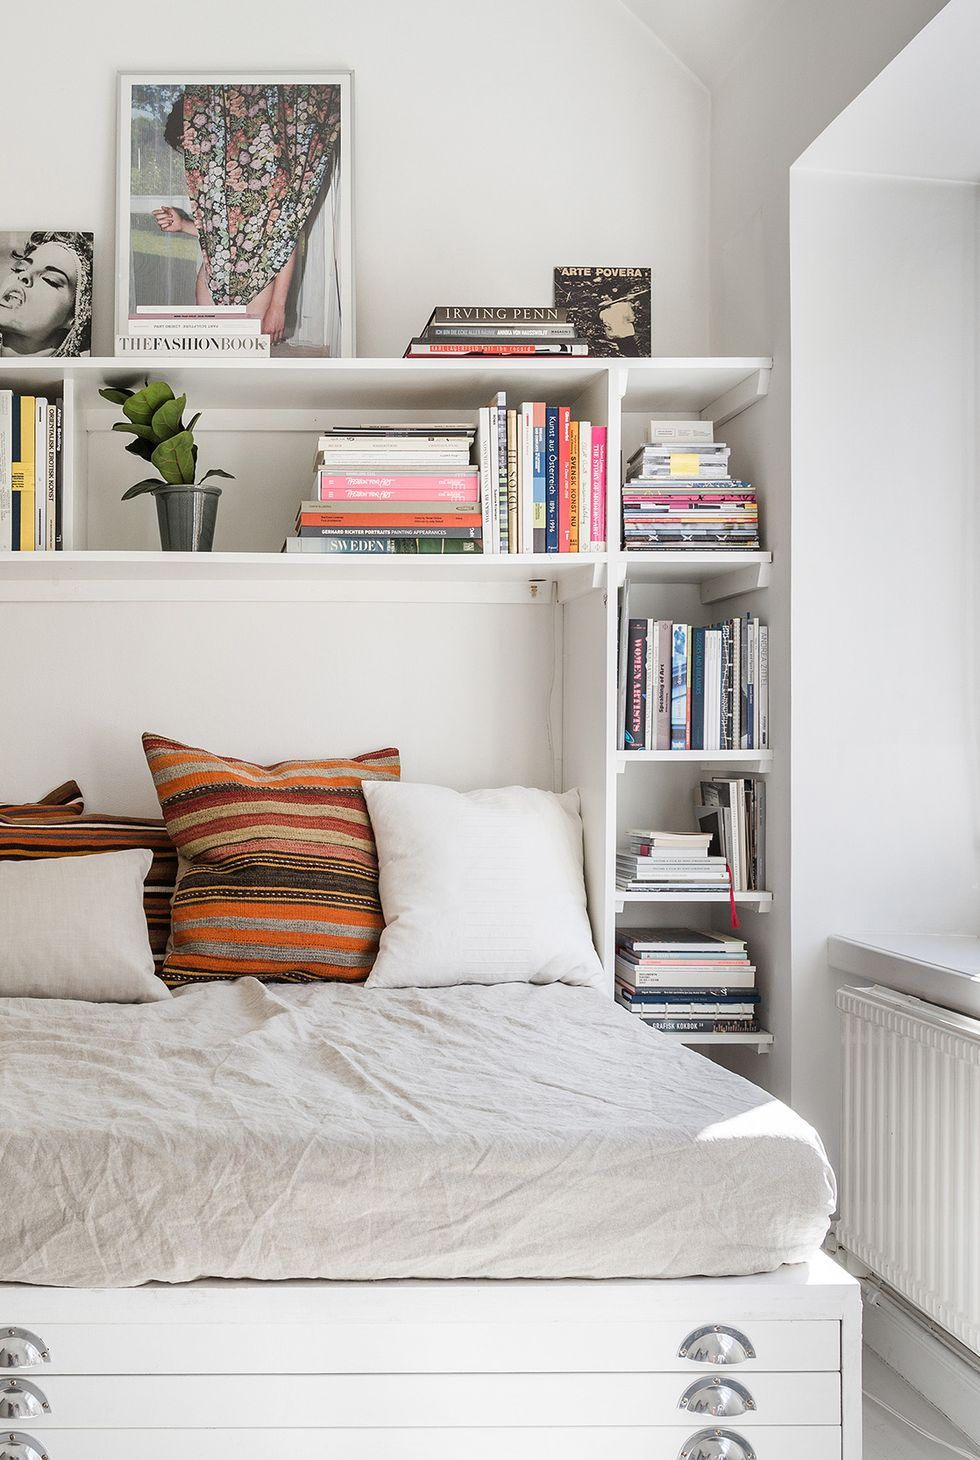 28 Ingenious Tricks That Ll Make Even The Tiniest Studio Apartment Feel Like A Palace Small Apartment Living Small Apartment Bedrooms Tiny Apartment Decorating